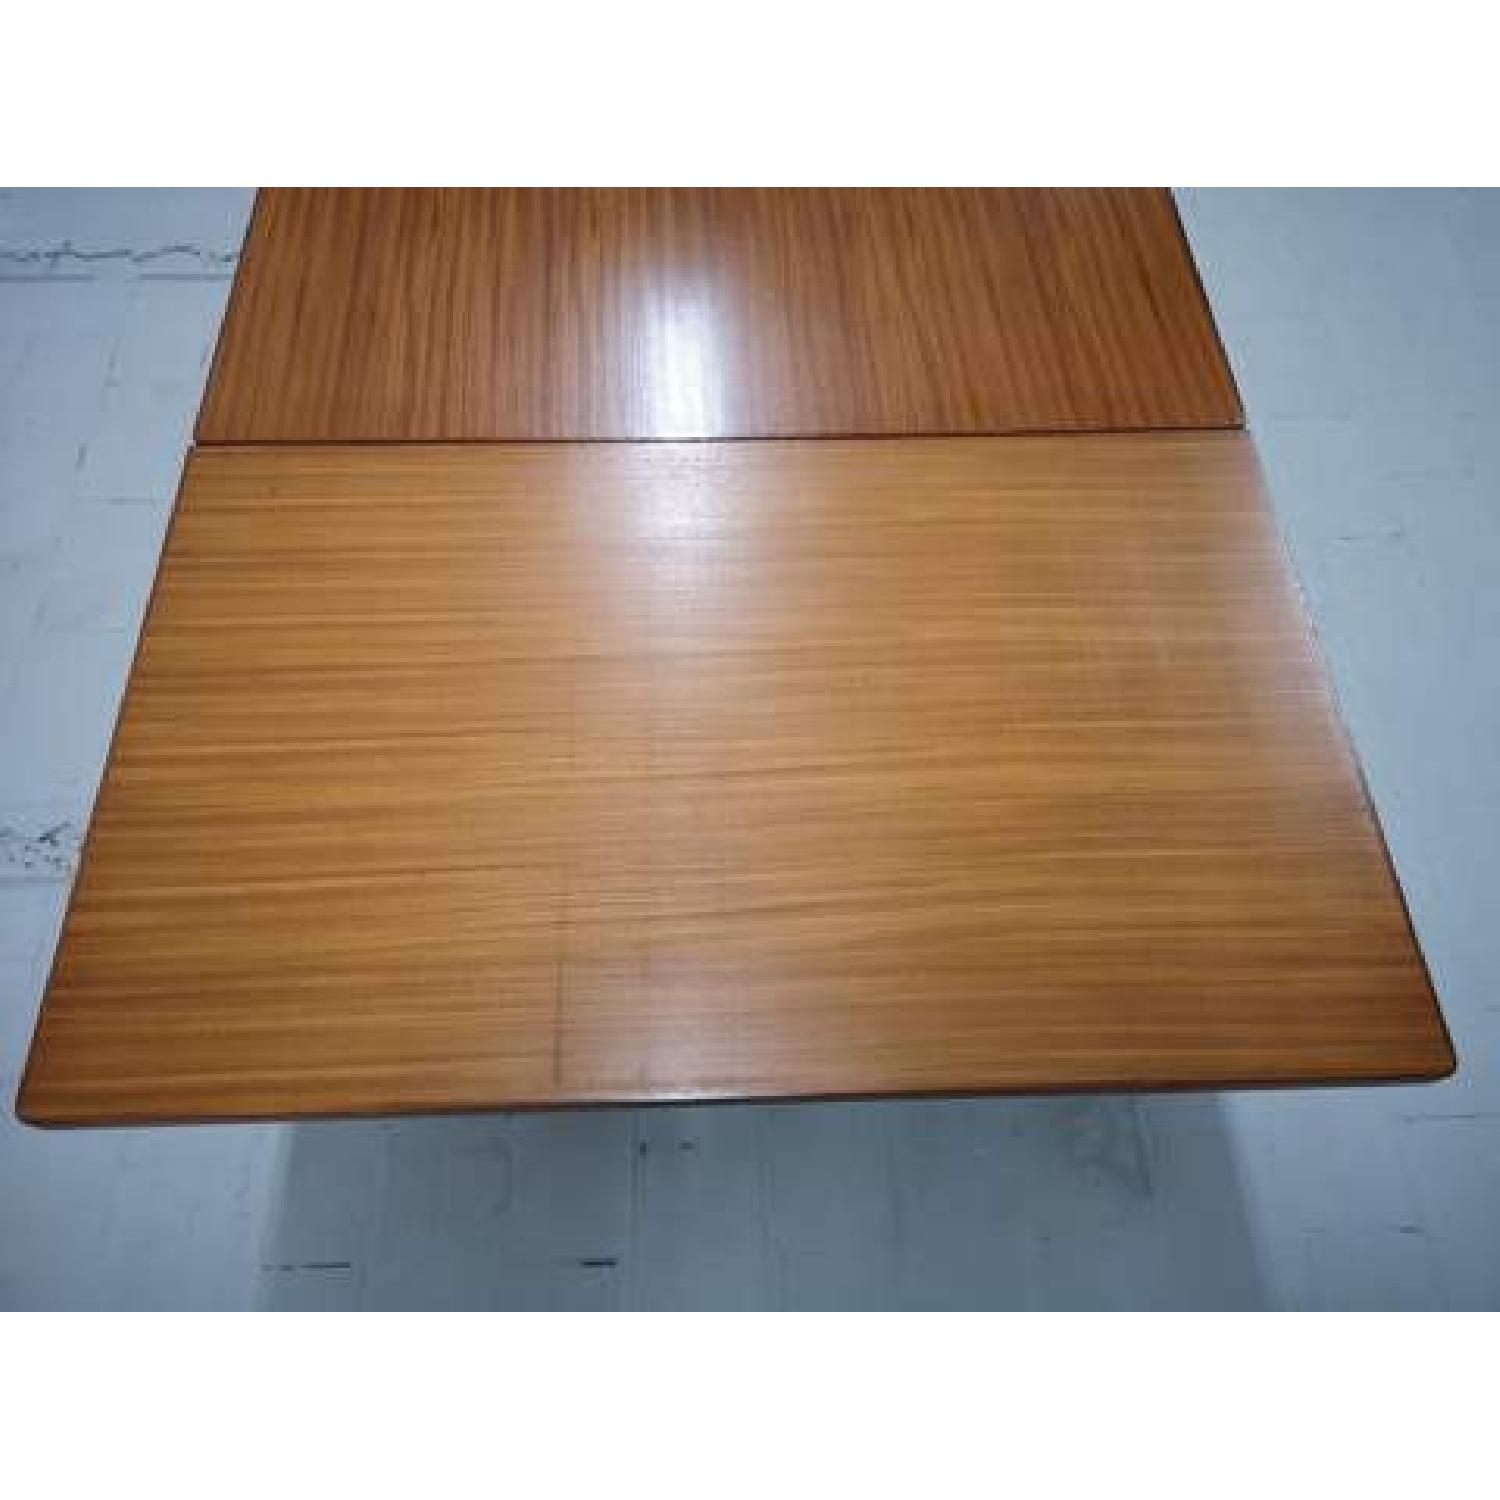 Mid-Century Modern Danish Extendable Draw Leaf Dining Table - image-11